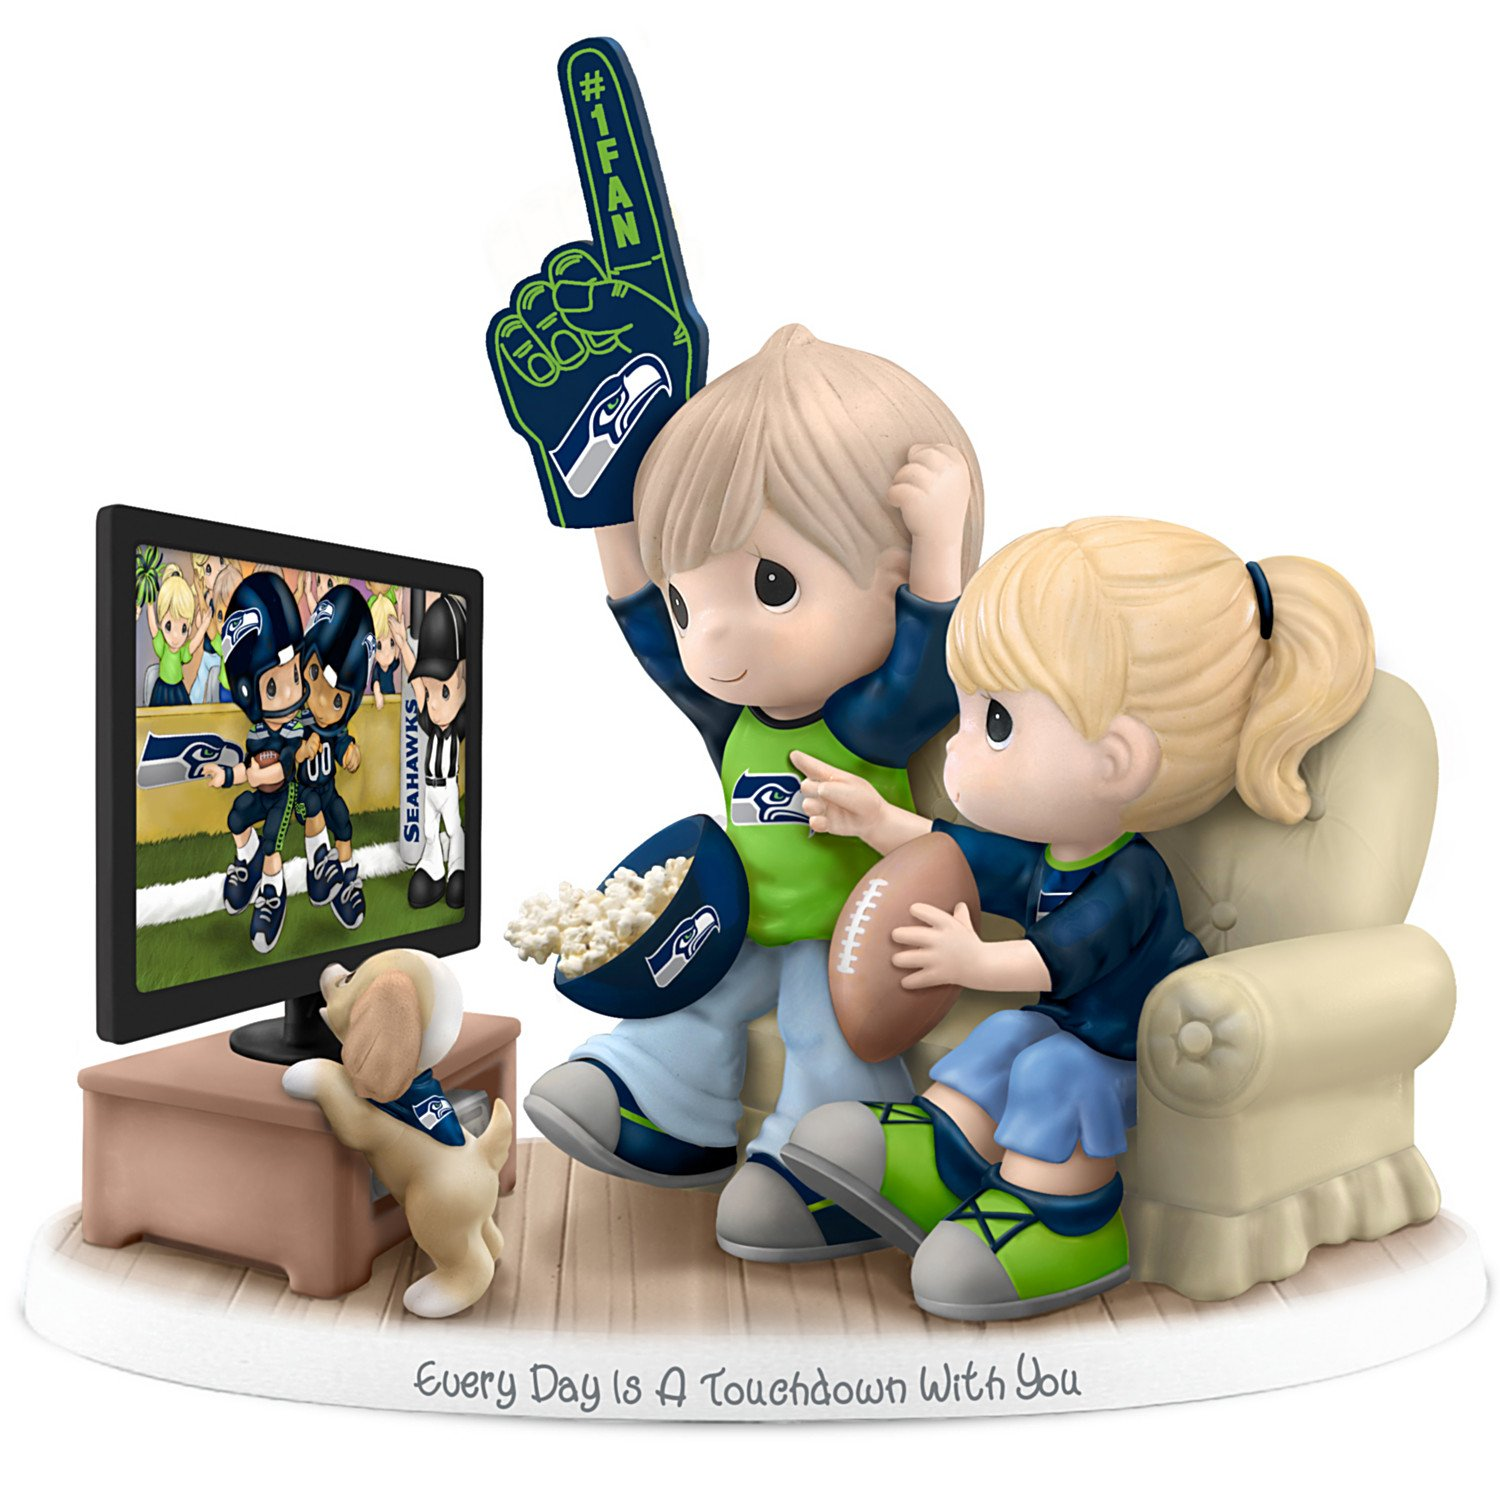 Figurine: Precious Moments Every Day Is A Touchdown With You Seahawks Figurine by The Hamilton Collection